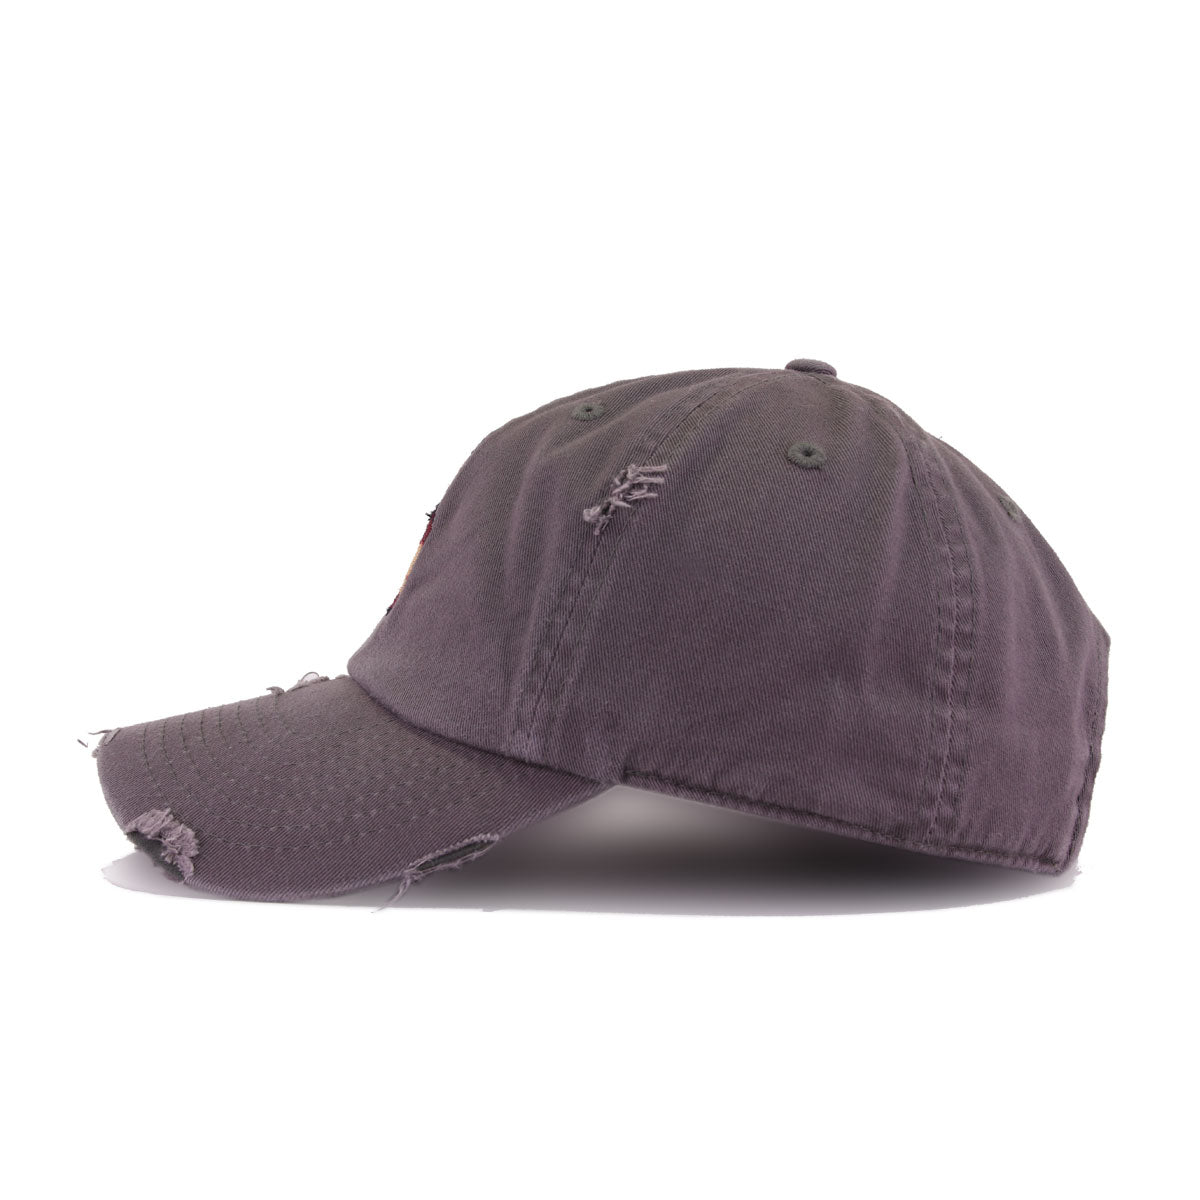 Distressed Henny Bottle Dark Grey KBEthos Vintage Dad Hat